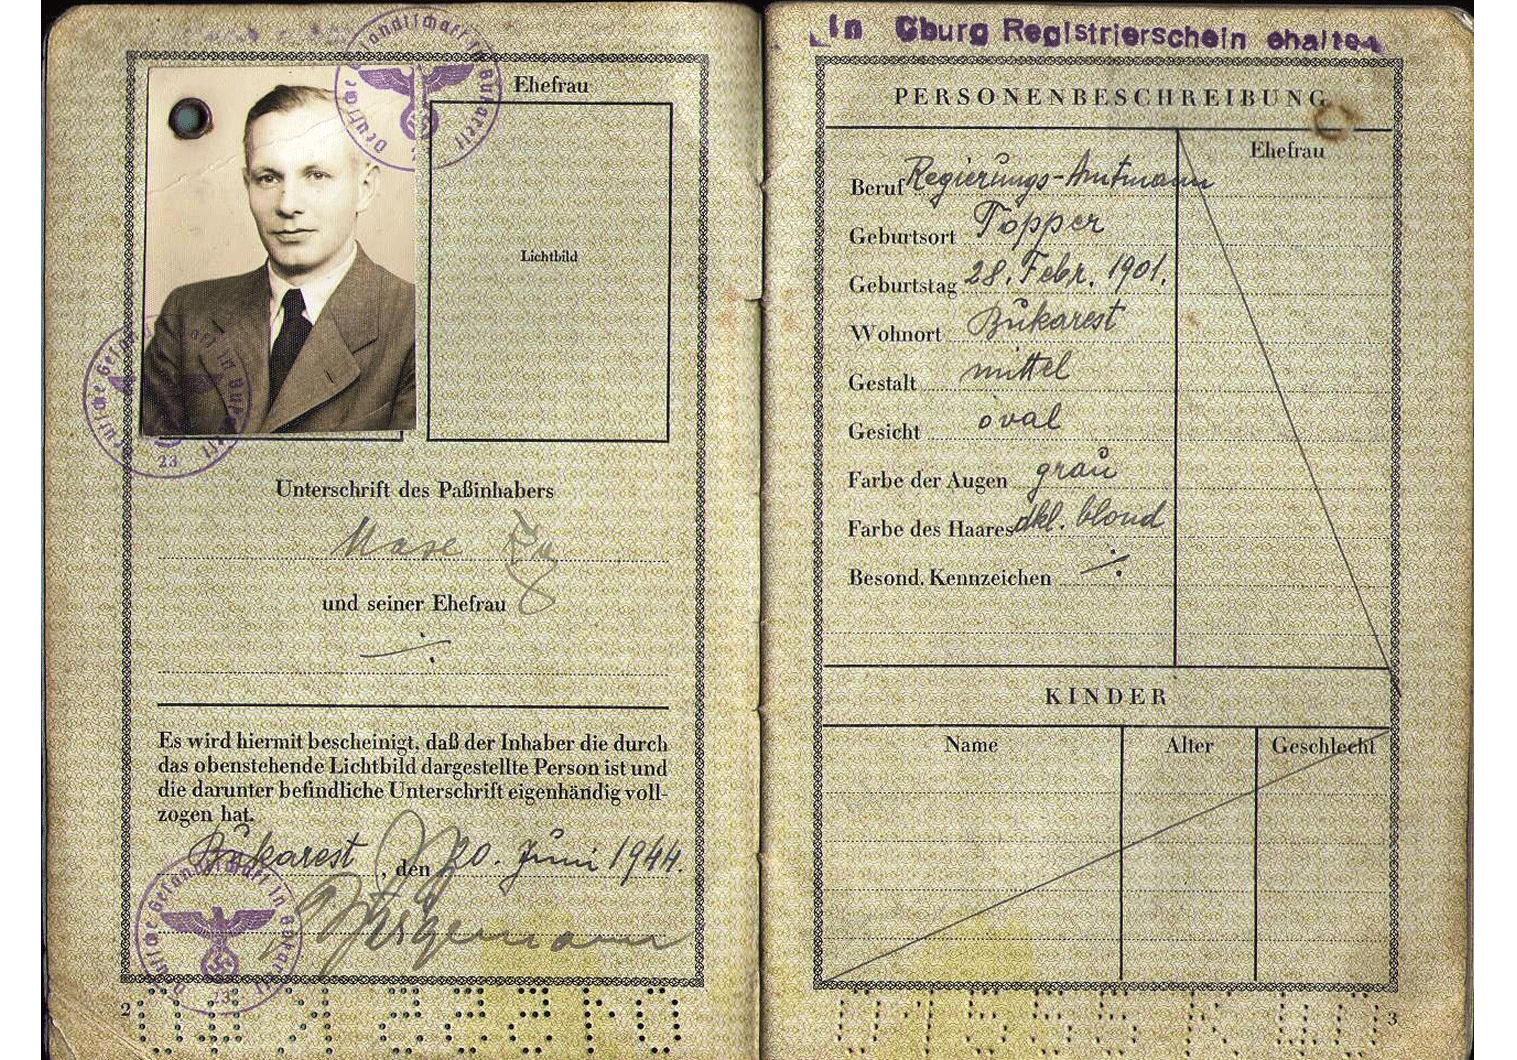 WW2 German Service Passport